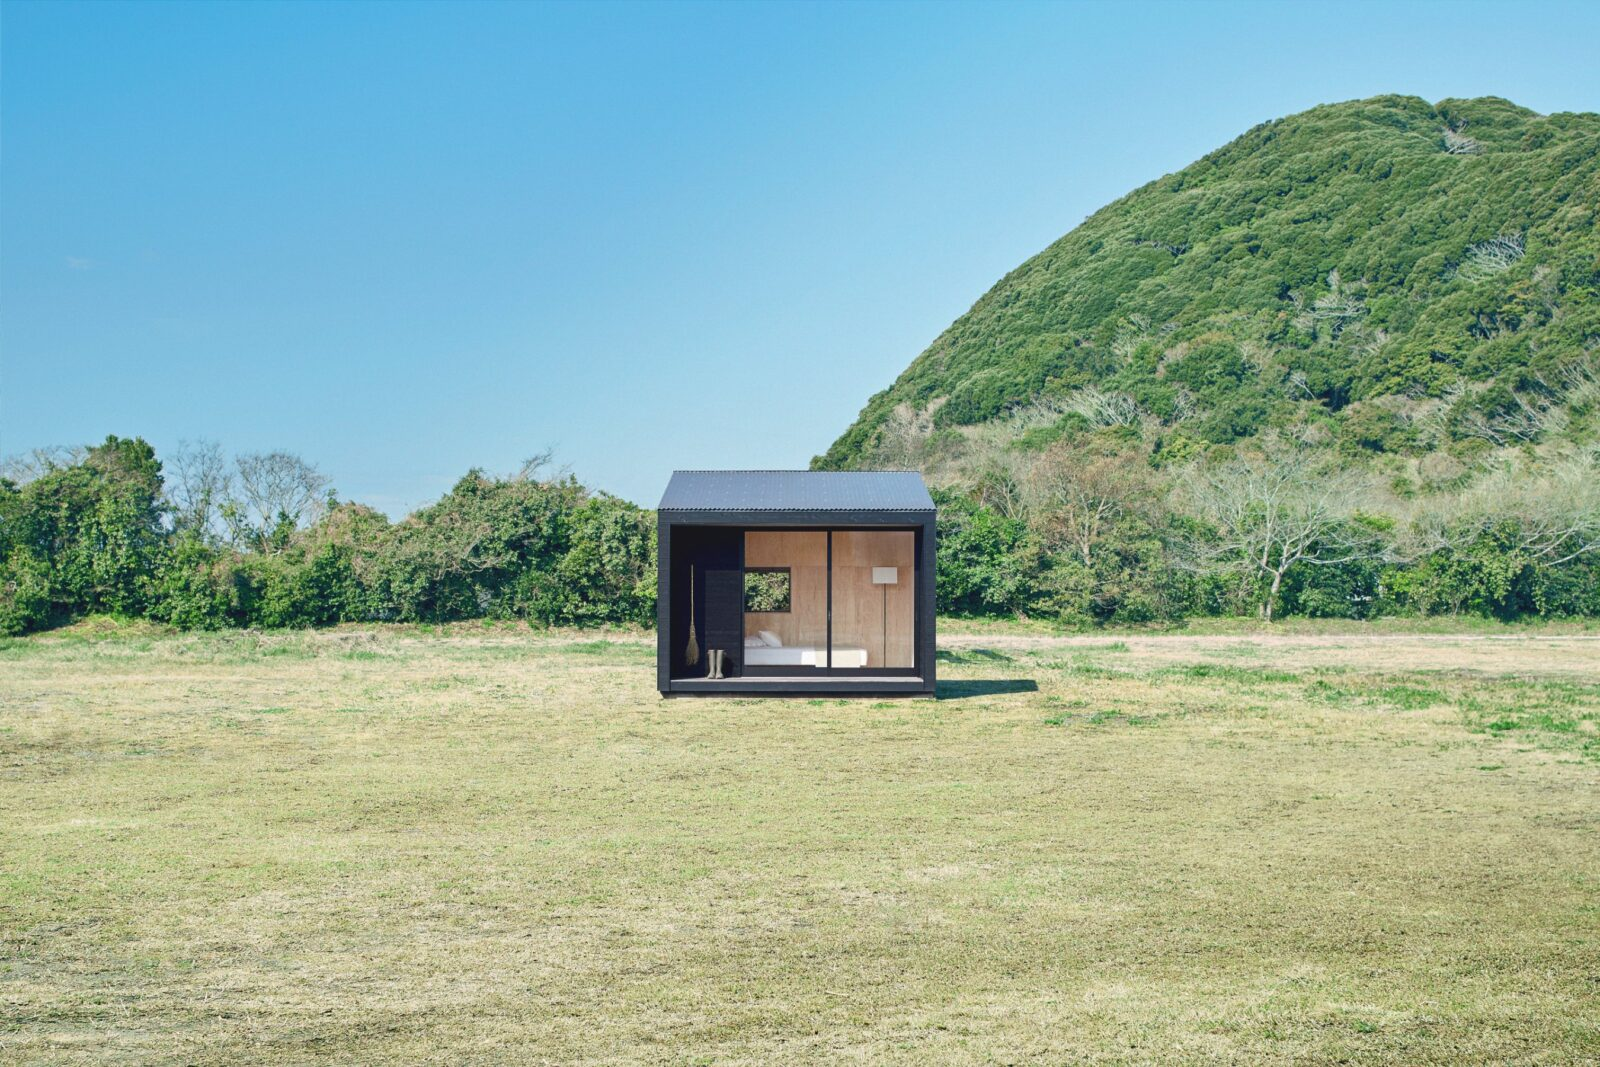 The $26,300 Muji Hut